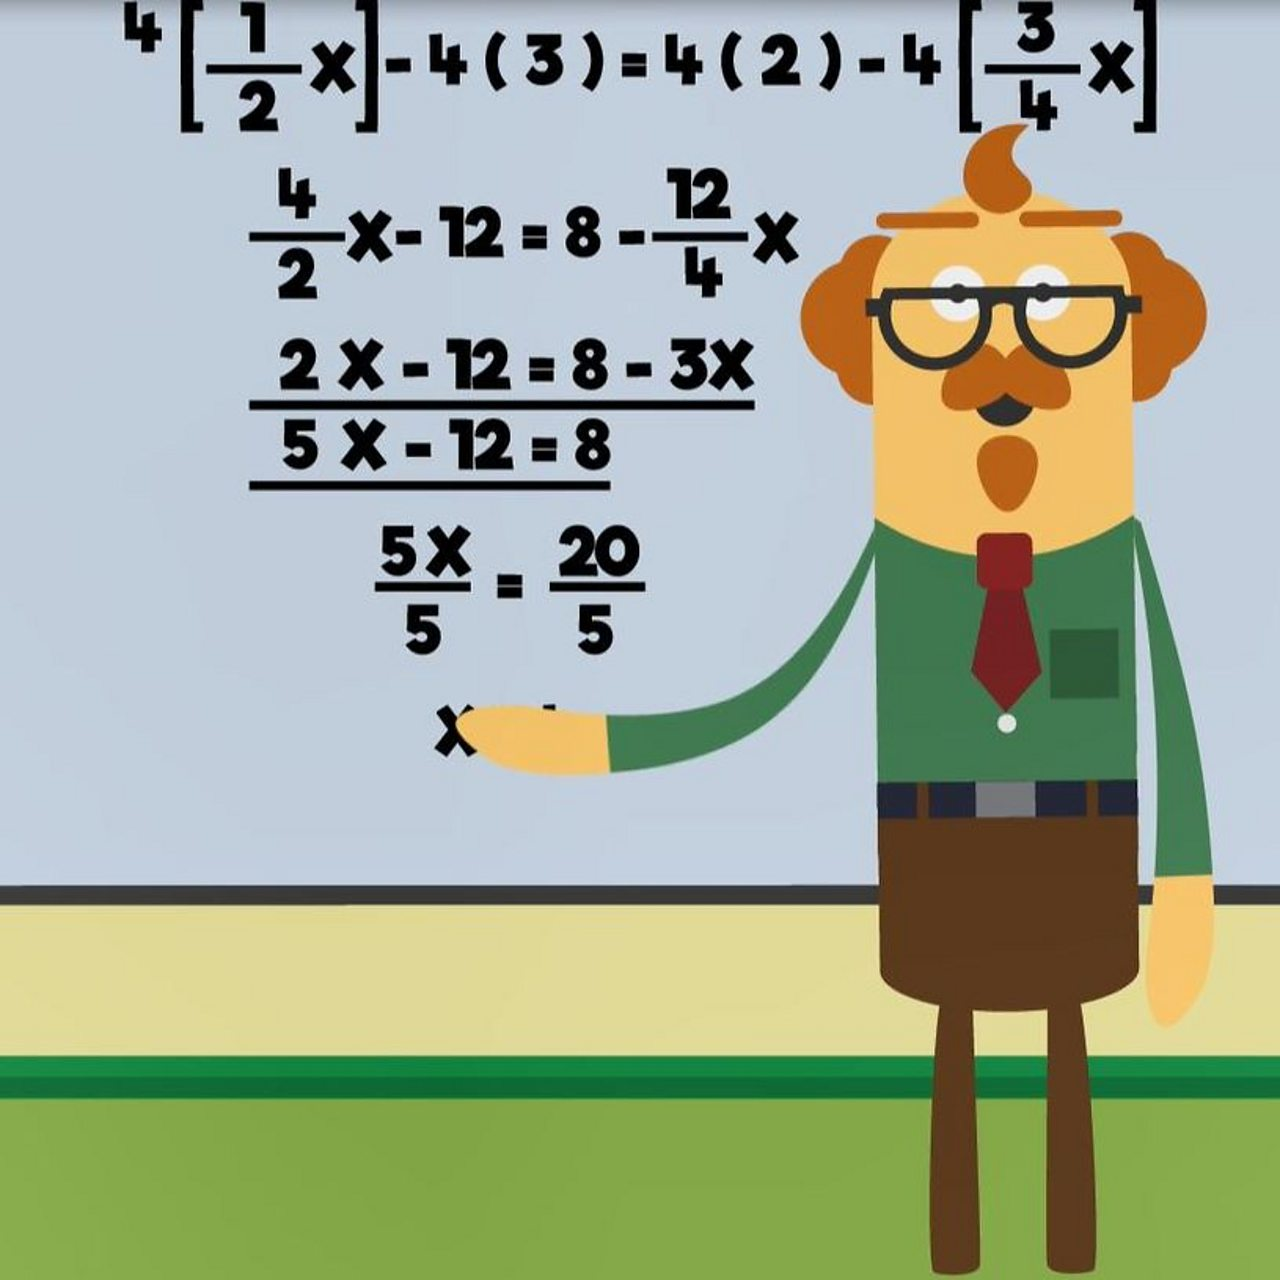 Animation of teacher pointing to a board full of maths equations